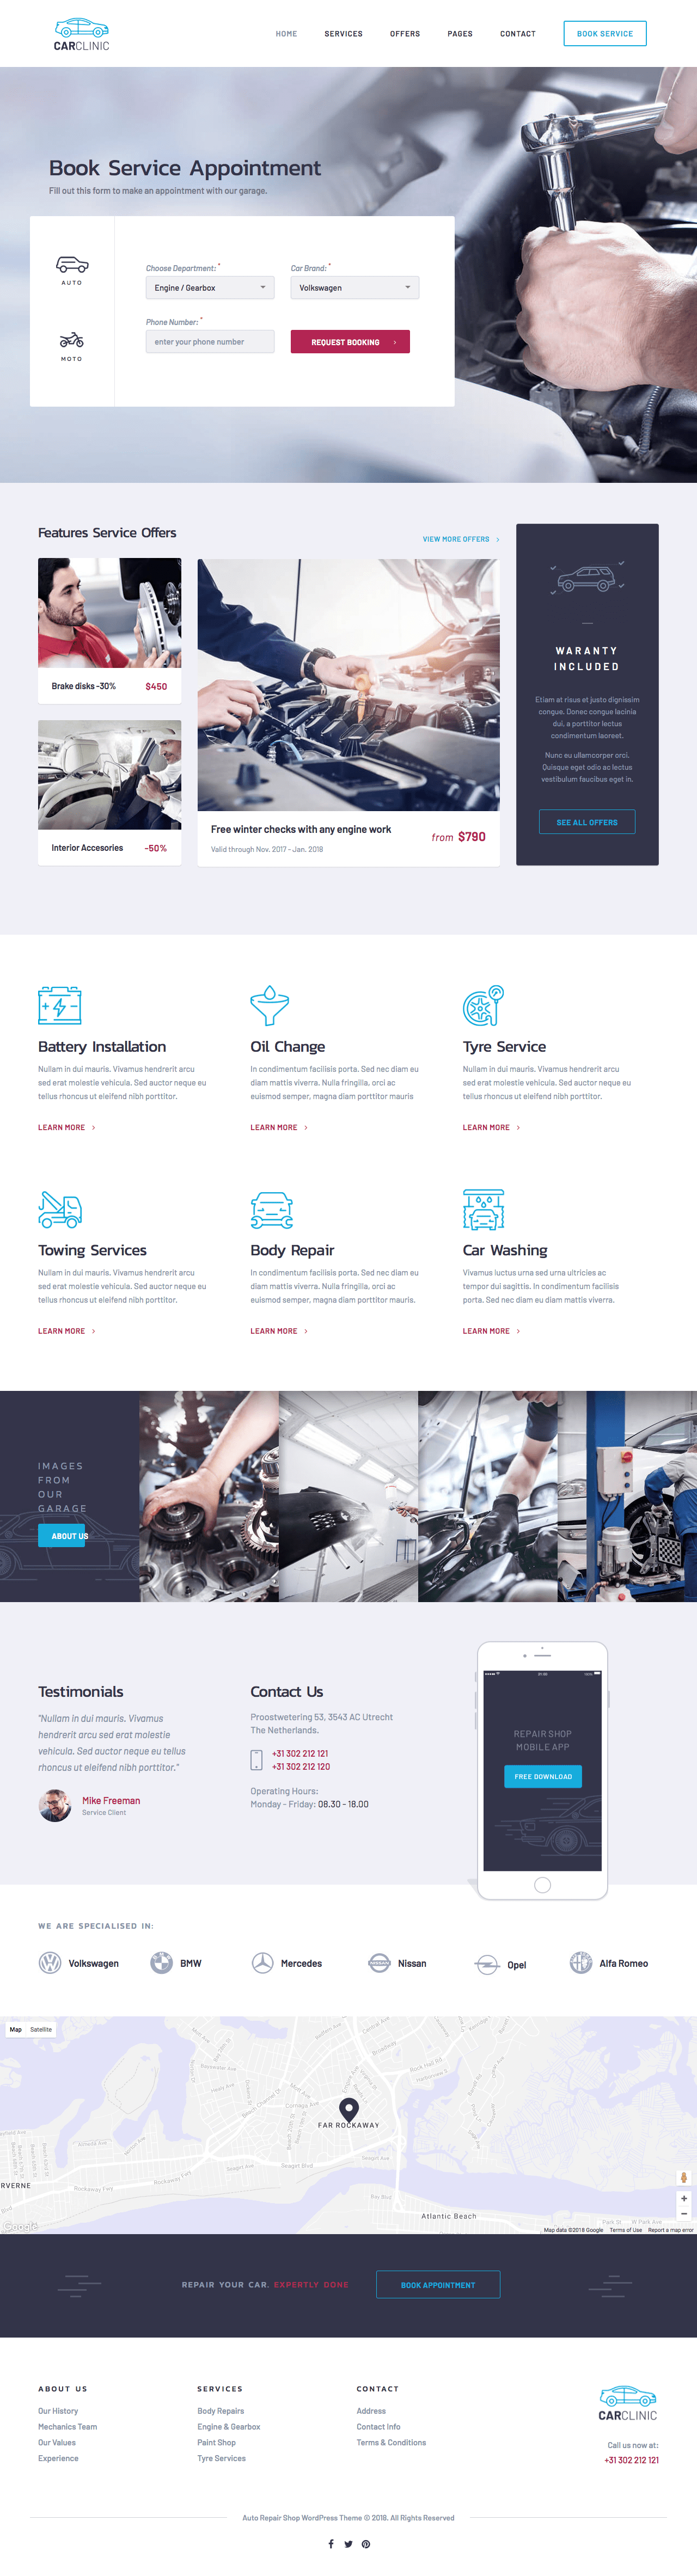 Car Clinic WordPress Theme for Auto Repair Shop